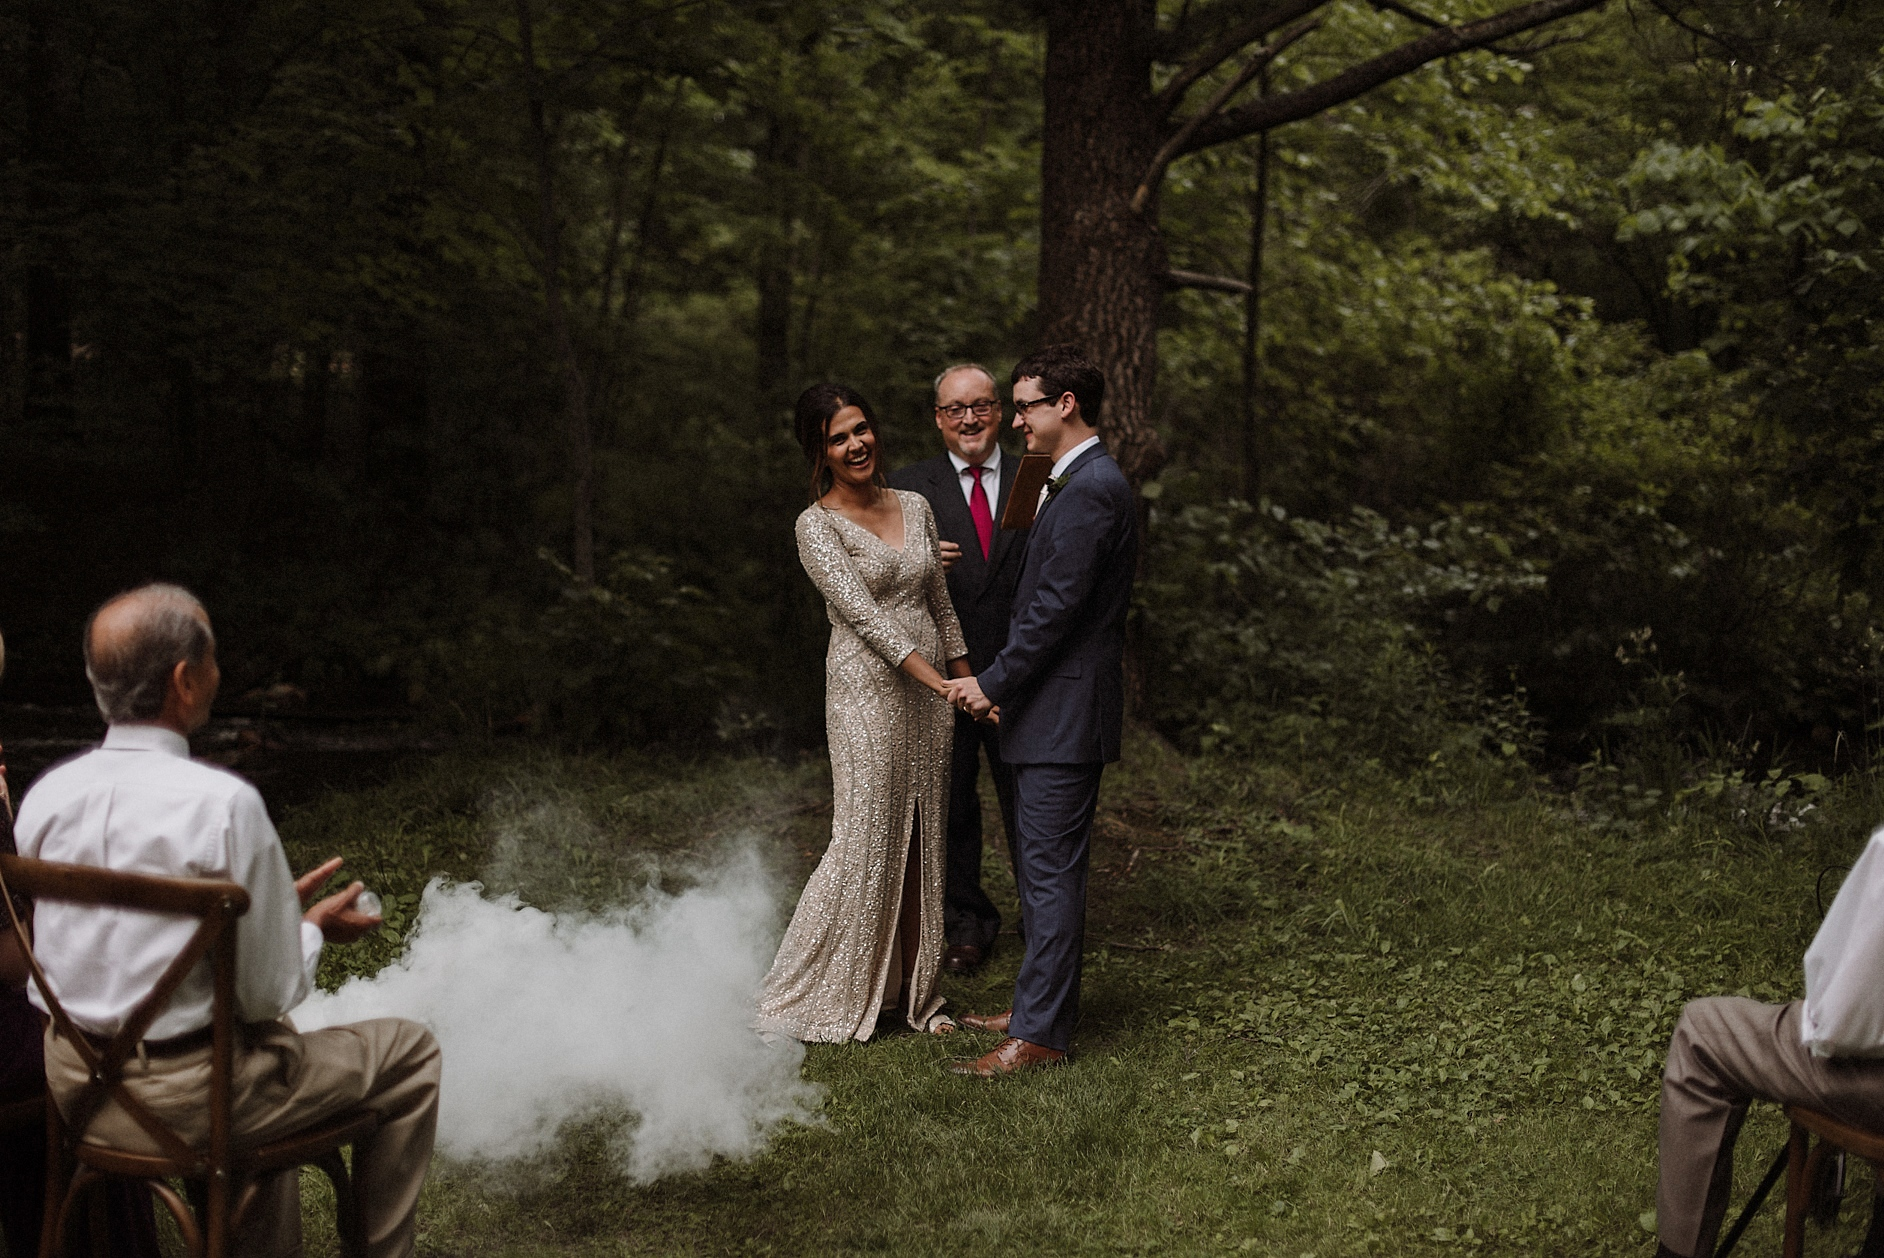 Elopement_Co_Michigan_Wedding-97